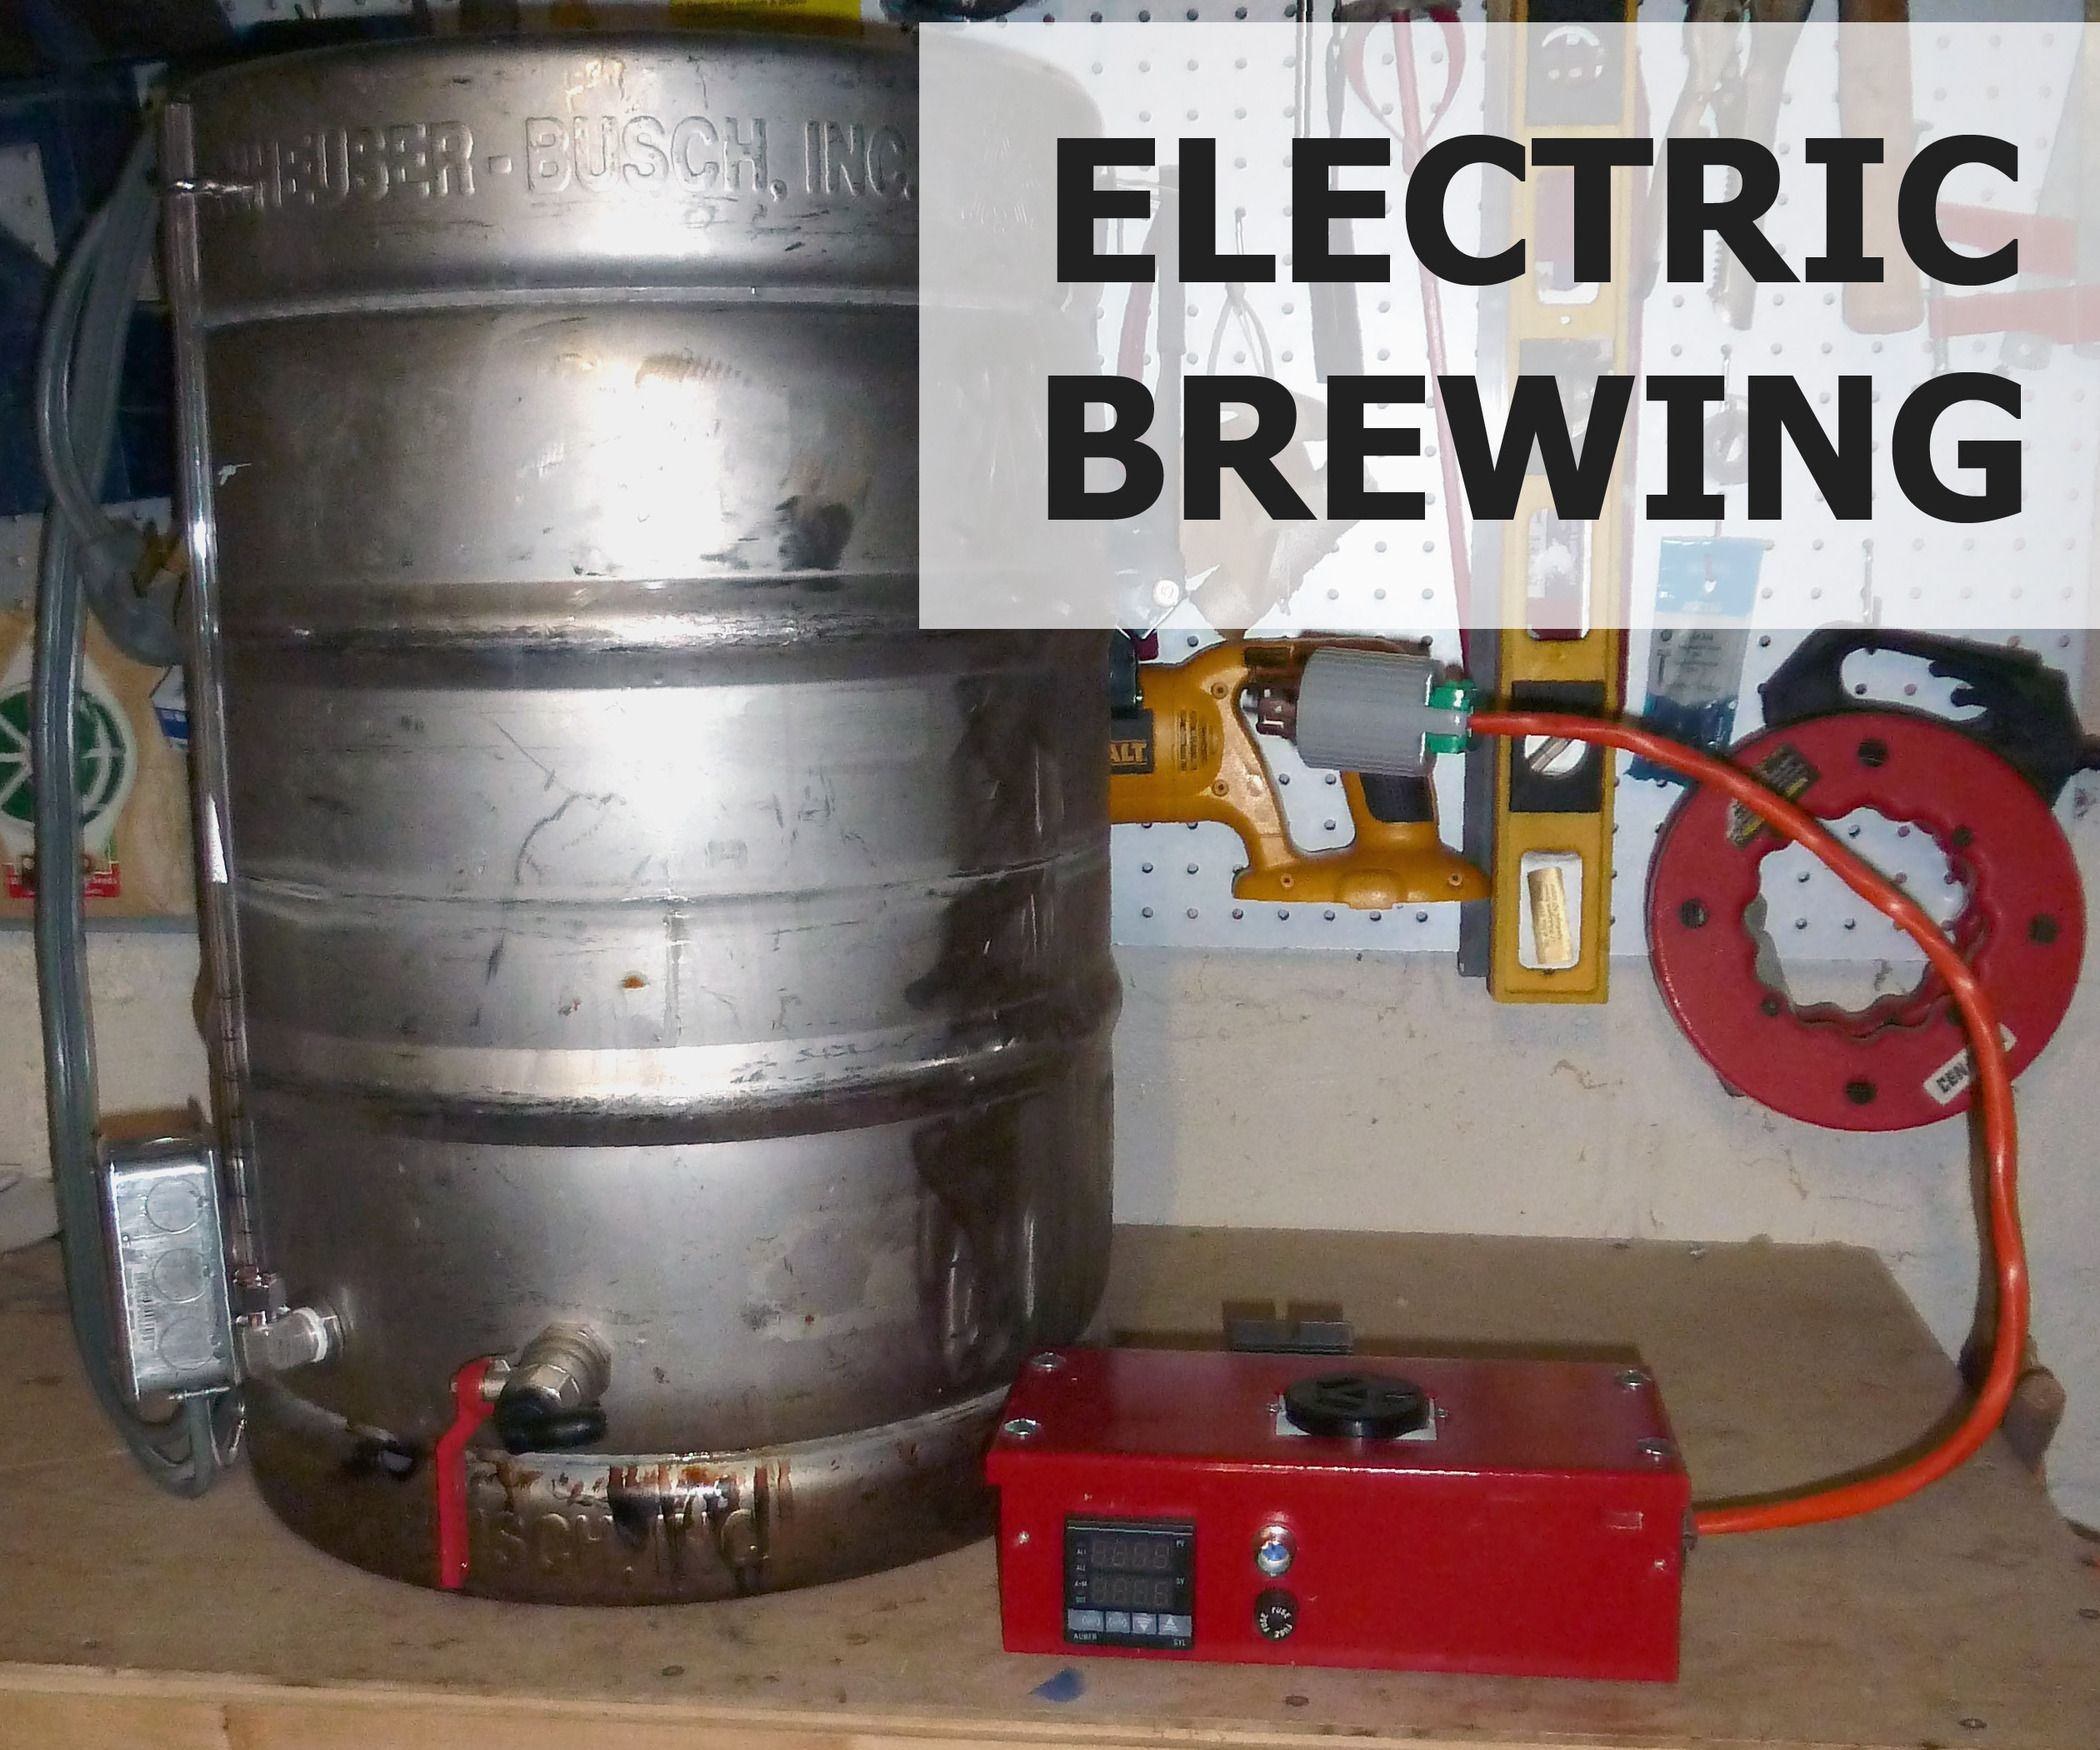 Brewing beer with electricity is a great way to both simplify and increase your level of control during the process. By adding an electric heating element directly to your kettle you can avoid the limited working space and heat output of a conventional stovetop and the space restrictions that come with a propane burner. Because the heating element is directly immersed in the water/wort, it also results in an extremely efficient transfer of heat. You'll b...